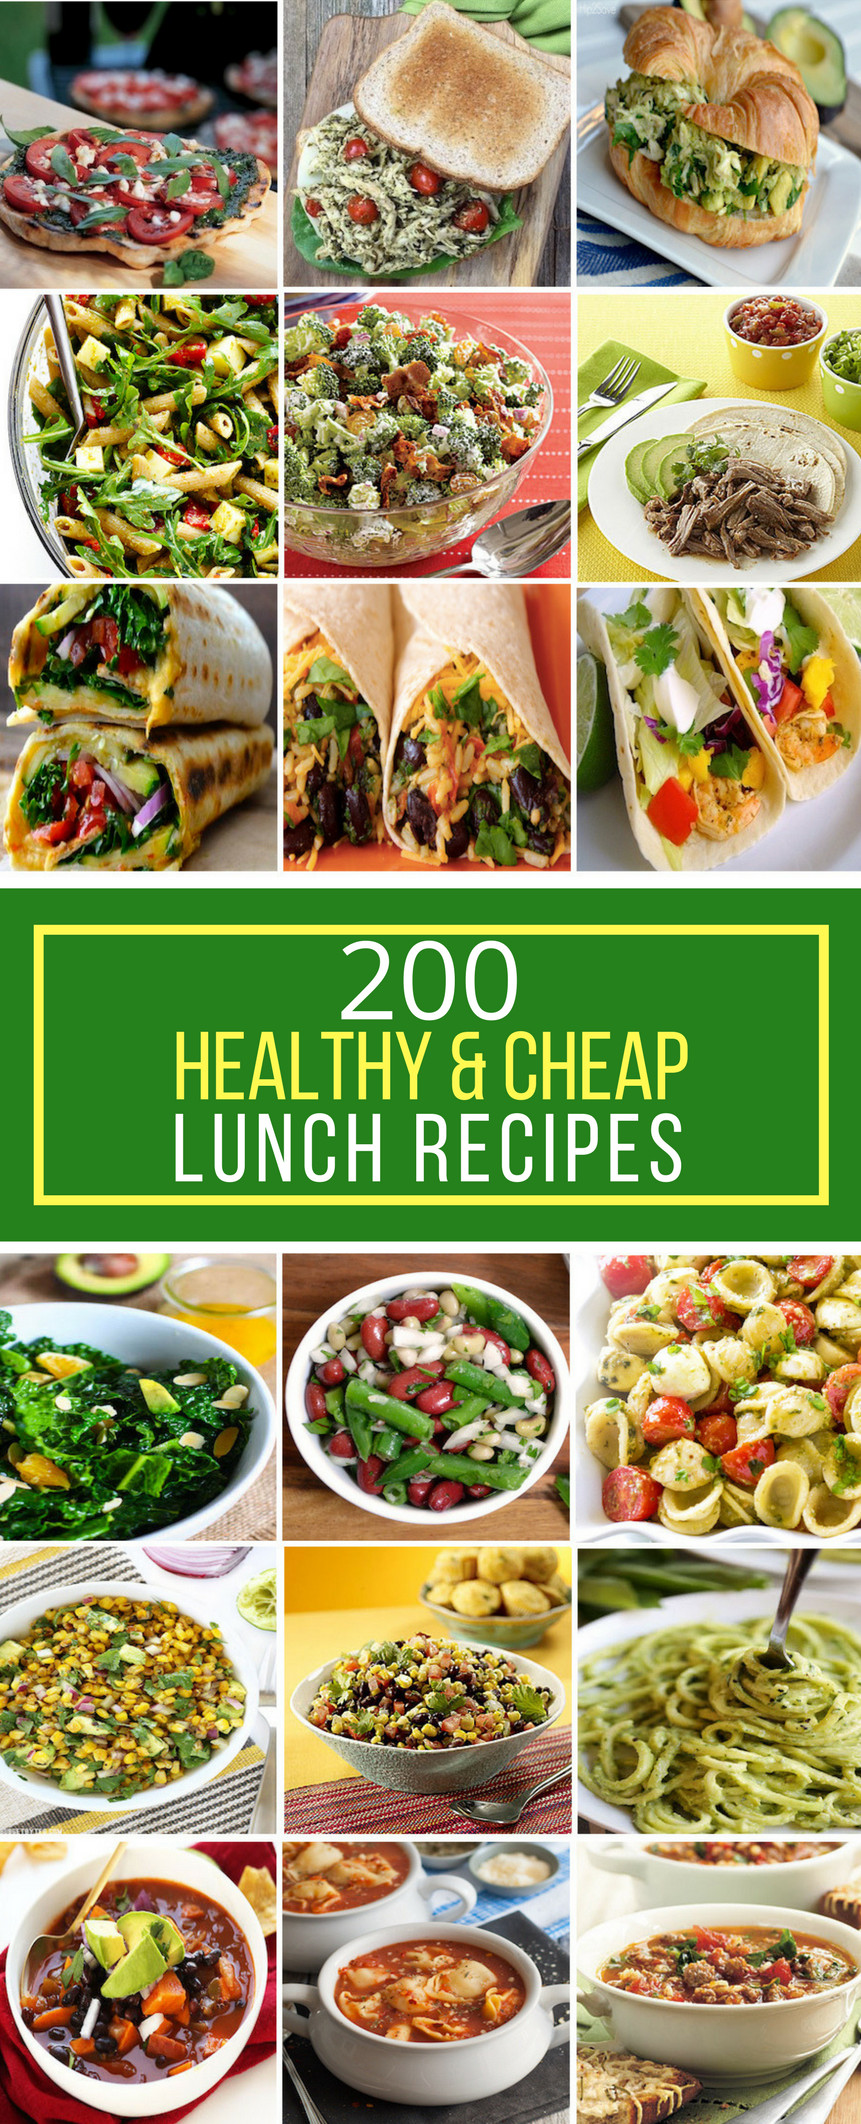 Cheap Healthy Dinner Recipes  200 Healthy & Cheap Lunch Recipes Prudent Penny Pincher